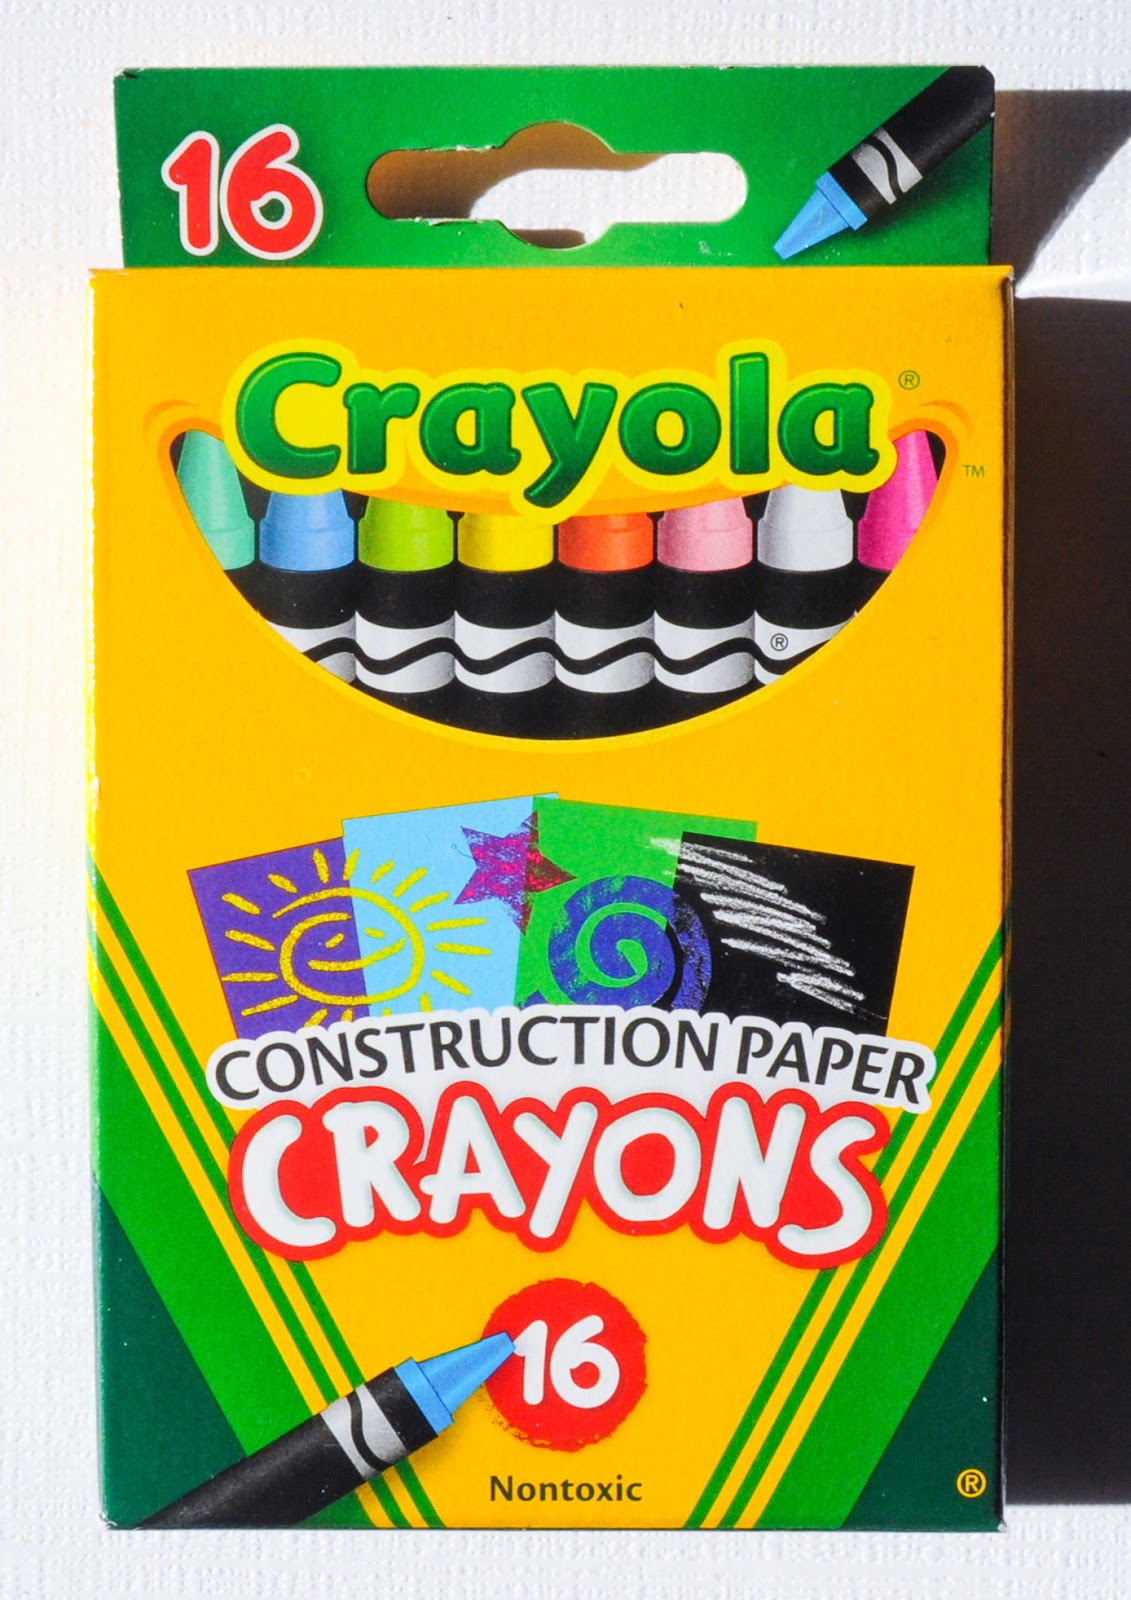 construction paper crayons Crayola construction paper crayons offer bright color laydown on colored and kraft paper.